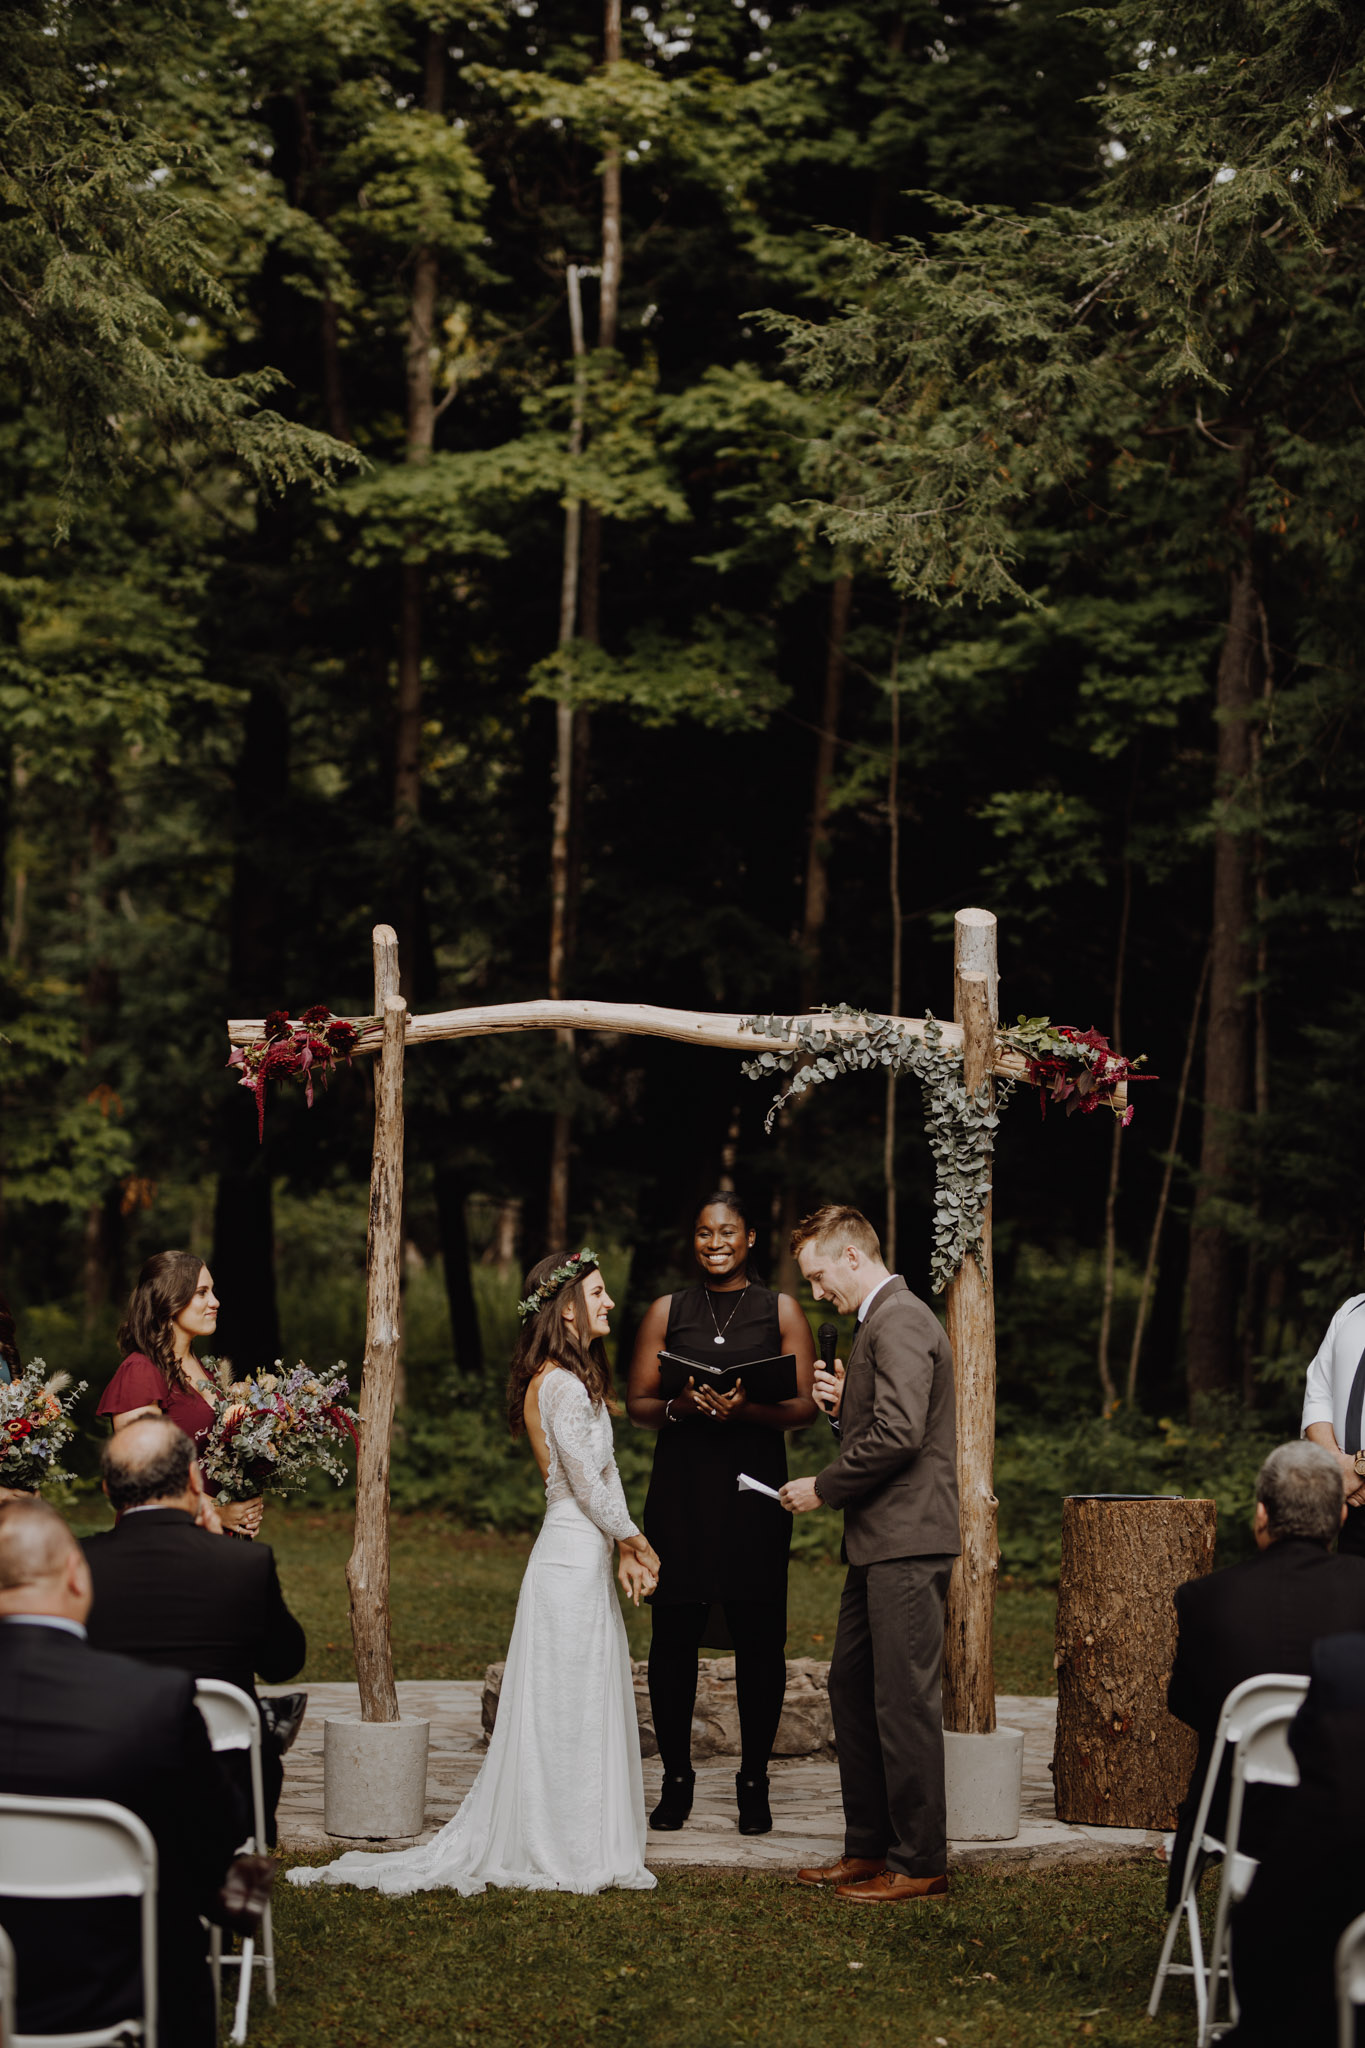 Outdoor Camp Wedding - ceremony by the forest